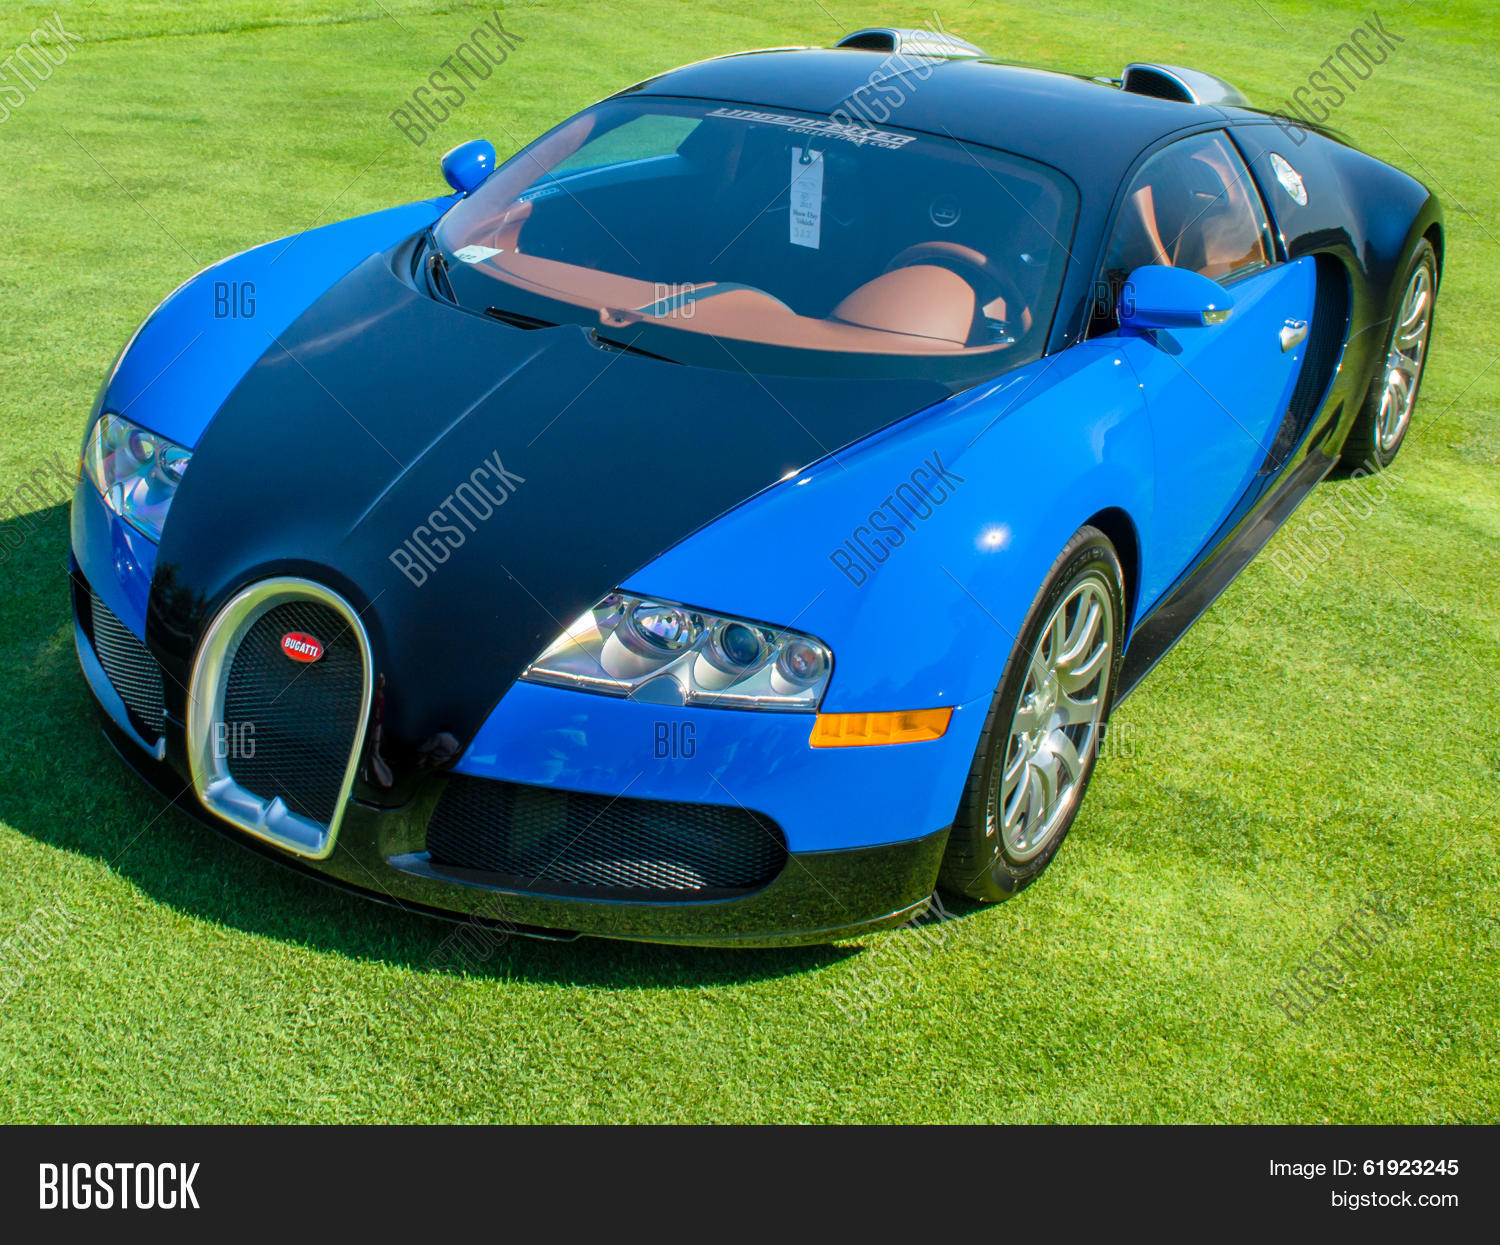 2007 bugatti veyron image photo bigstock. Black Bedroom Furniture Sets. Home Design Ideas